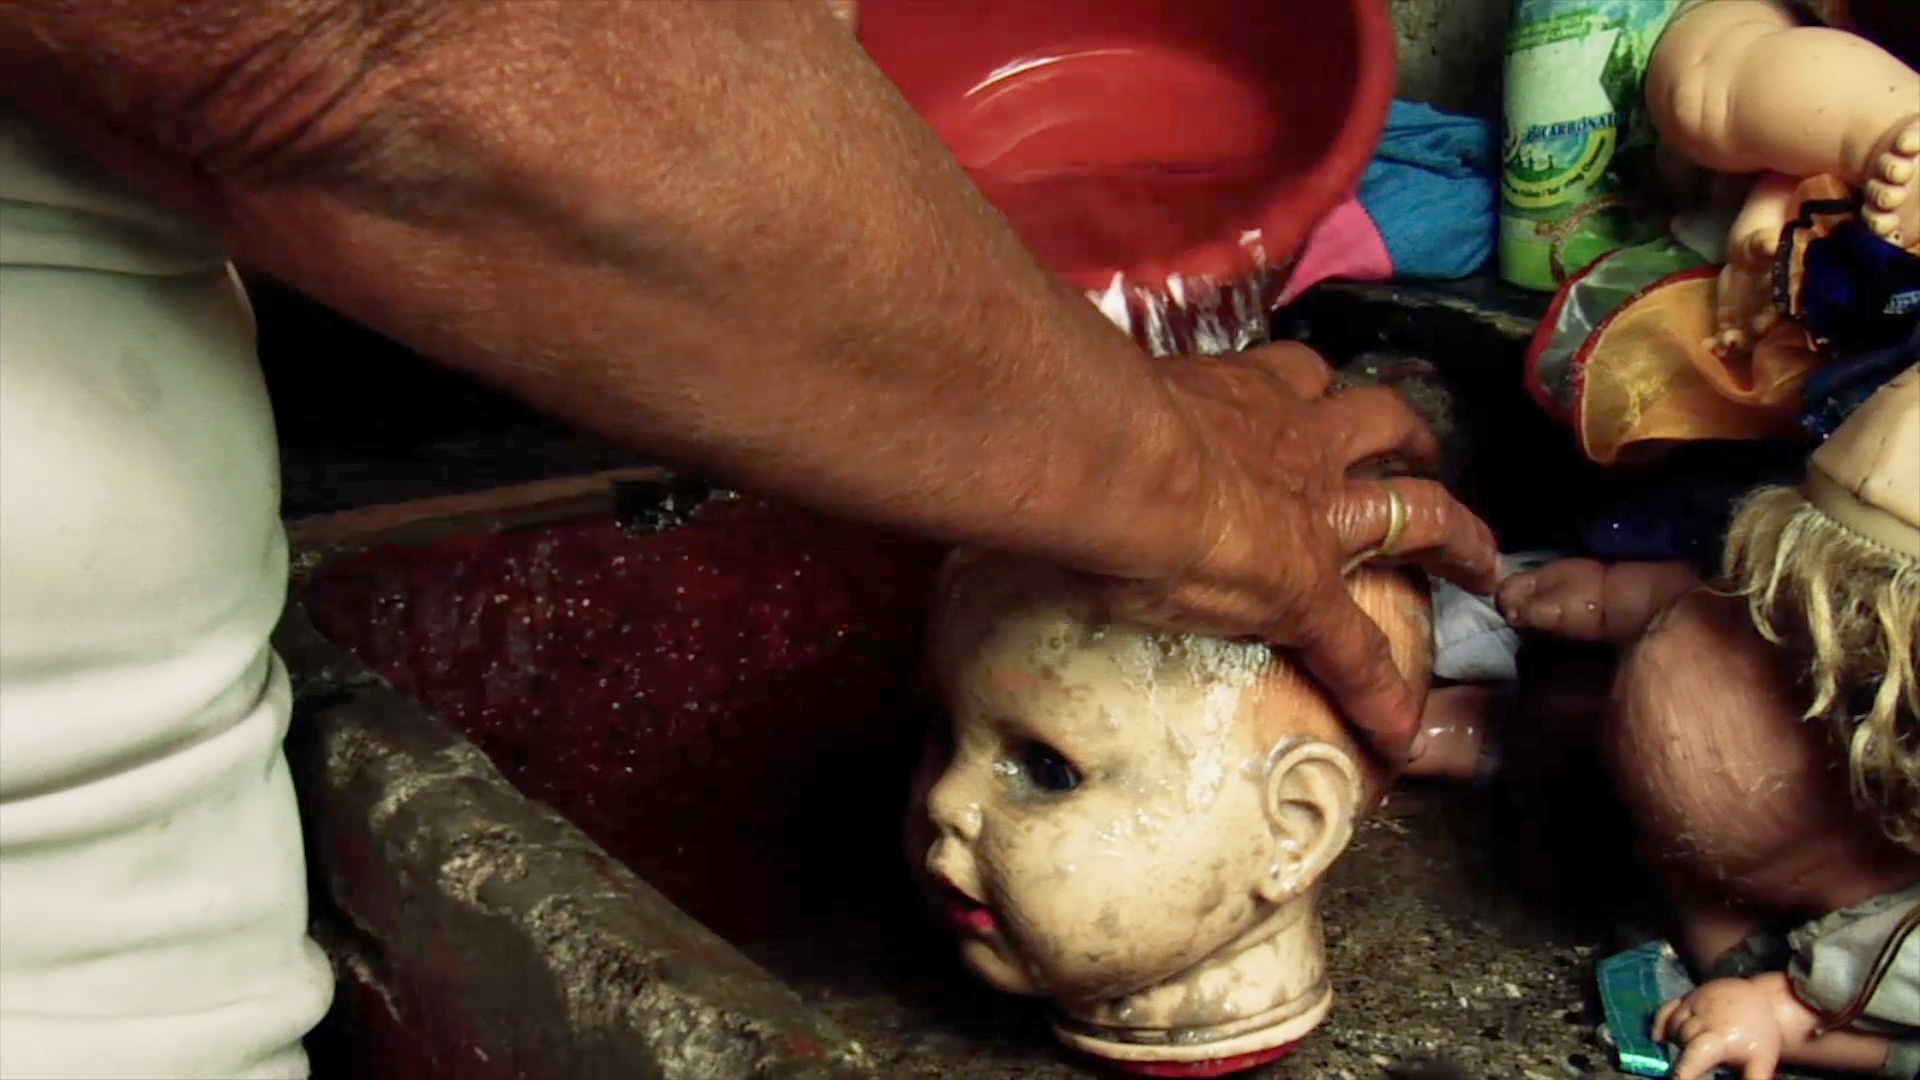 Washing the doll.